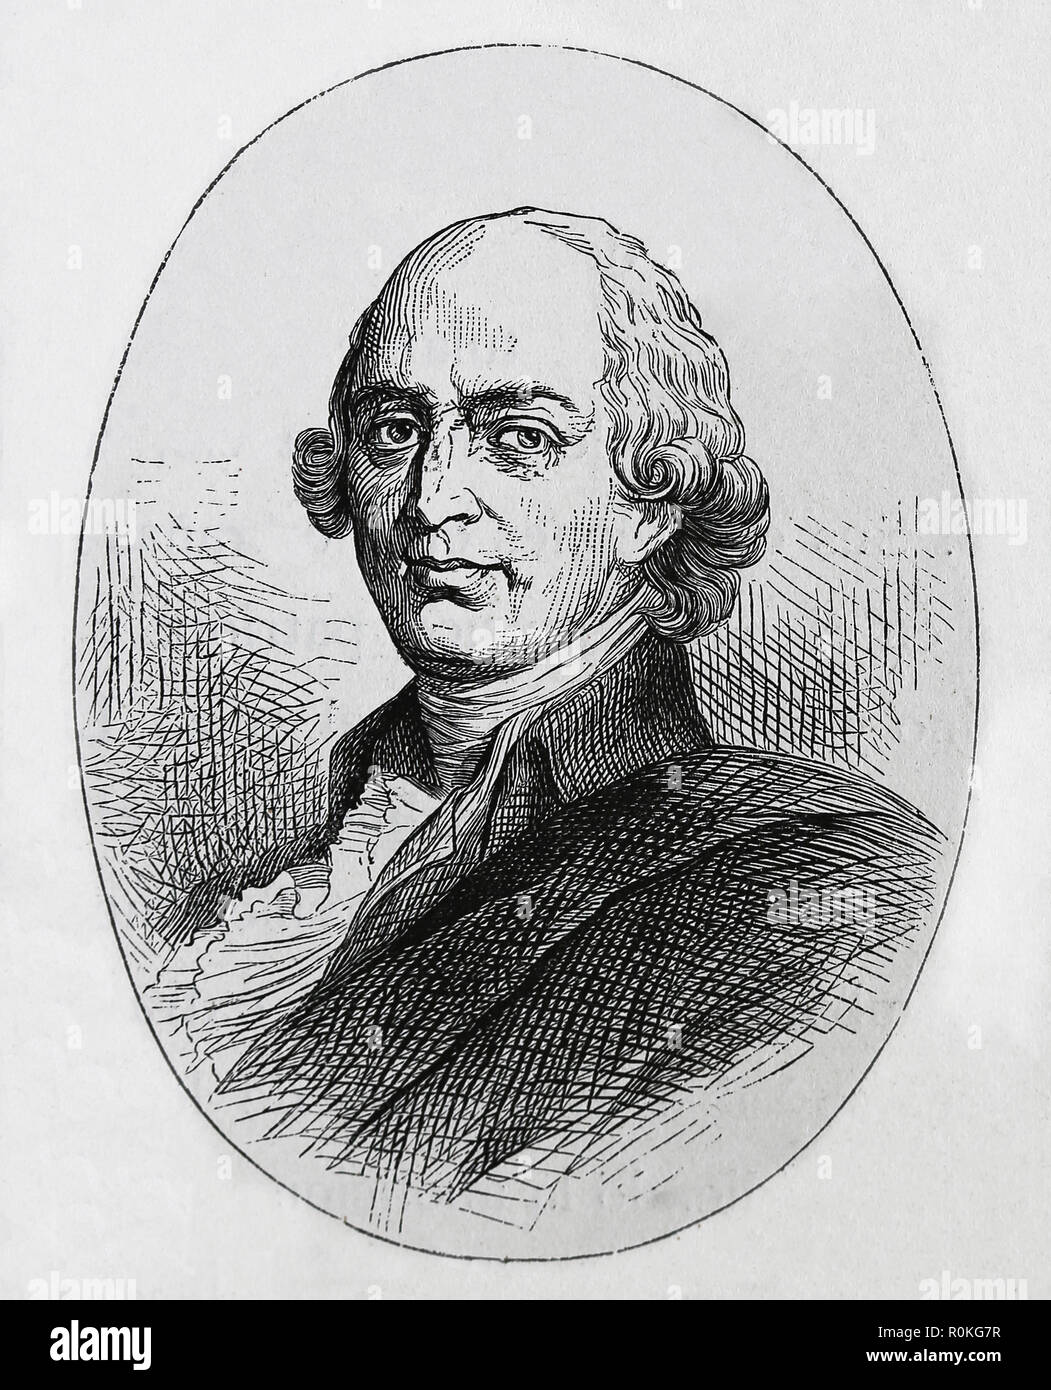 Johann Gottfried Herder (1744-1803). German Philosopher, theologian, poet and literary critic. Engraving of Germania, 1882. - Stock Image